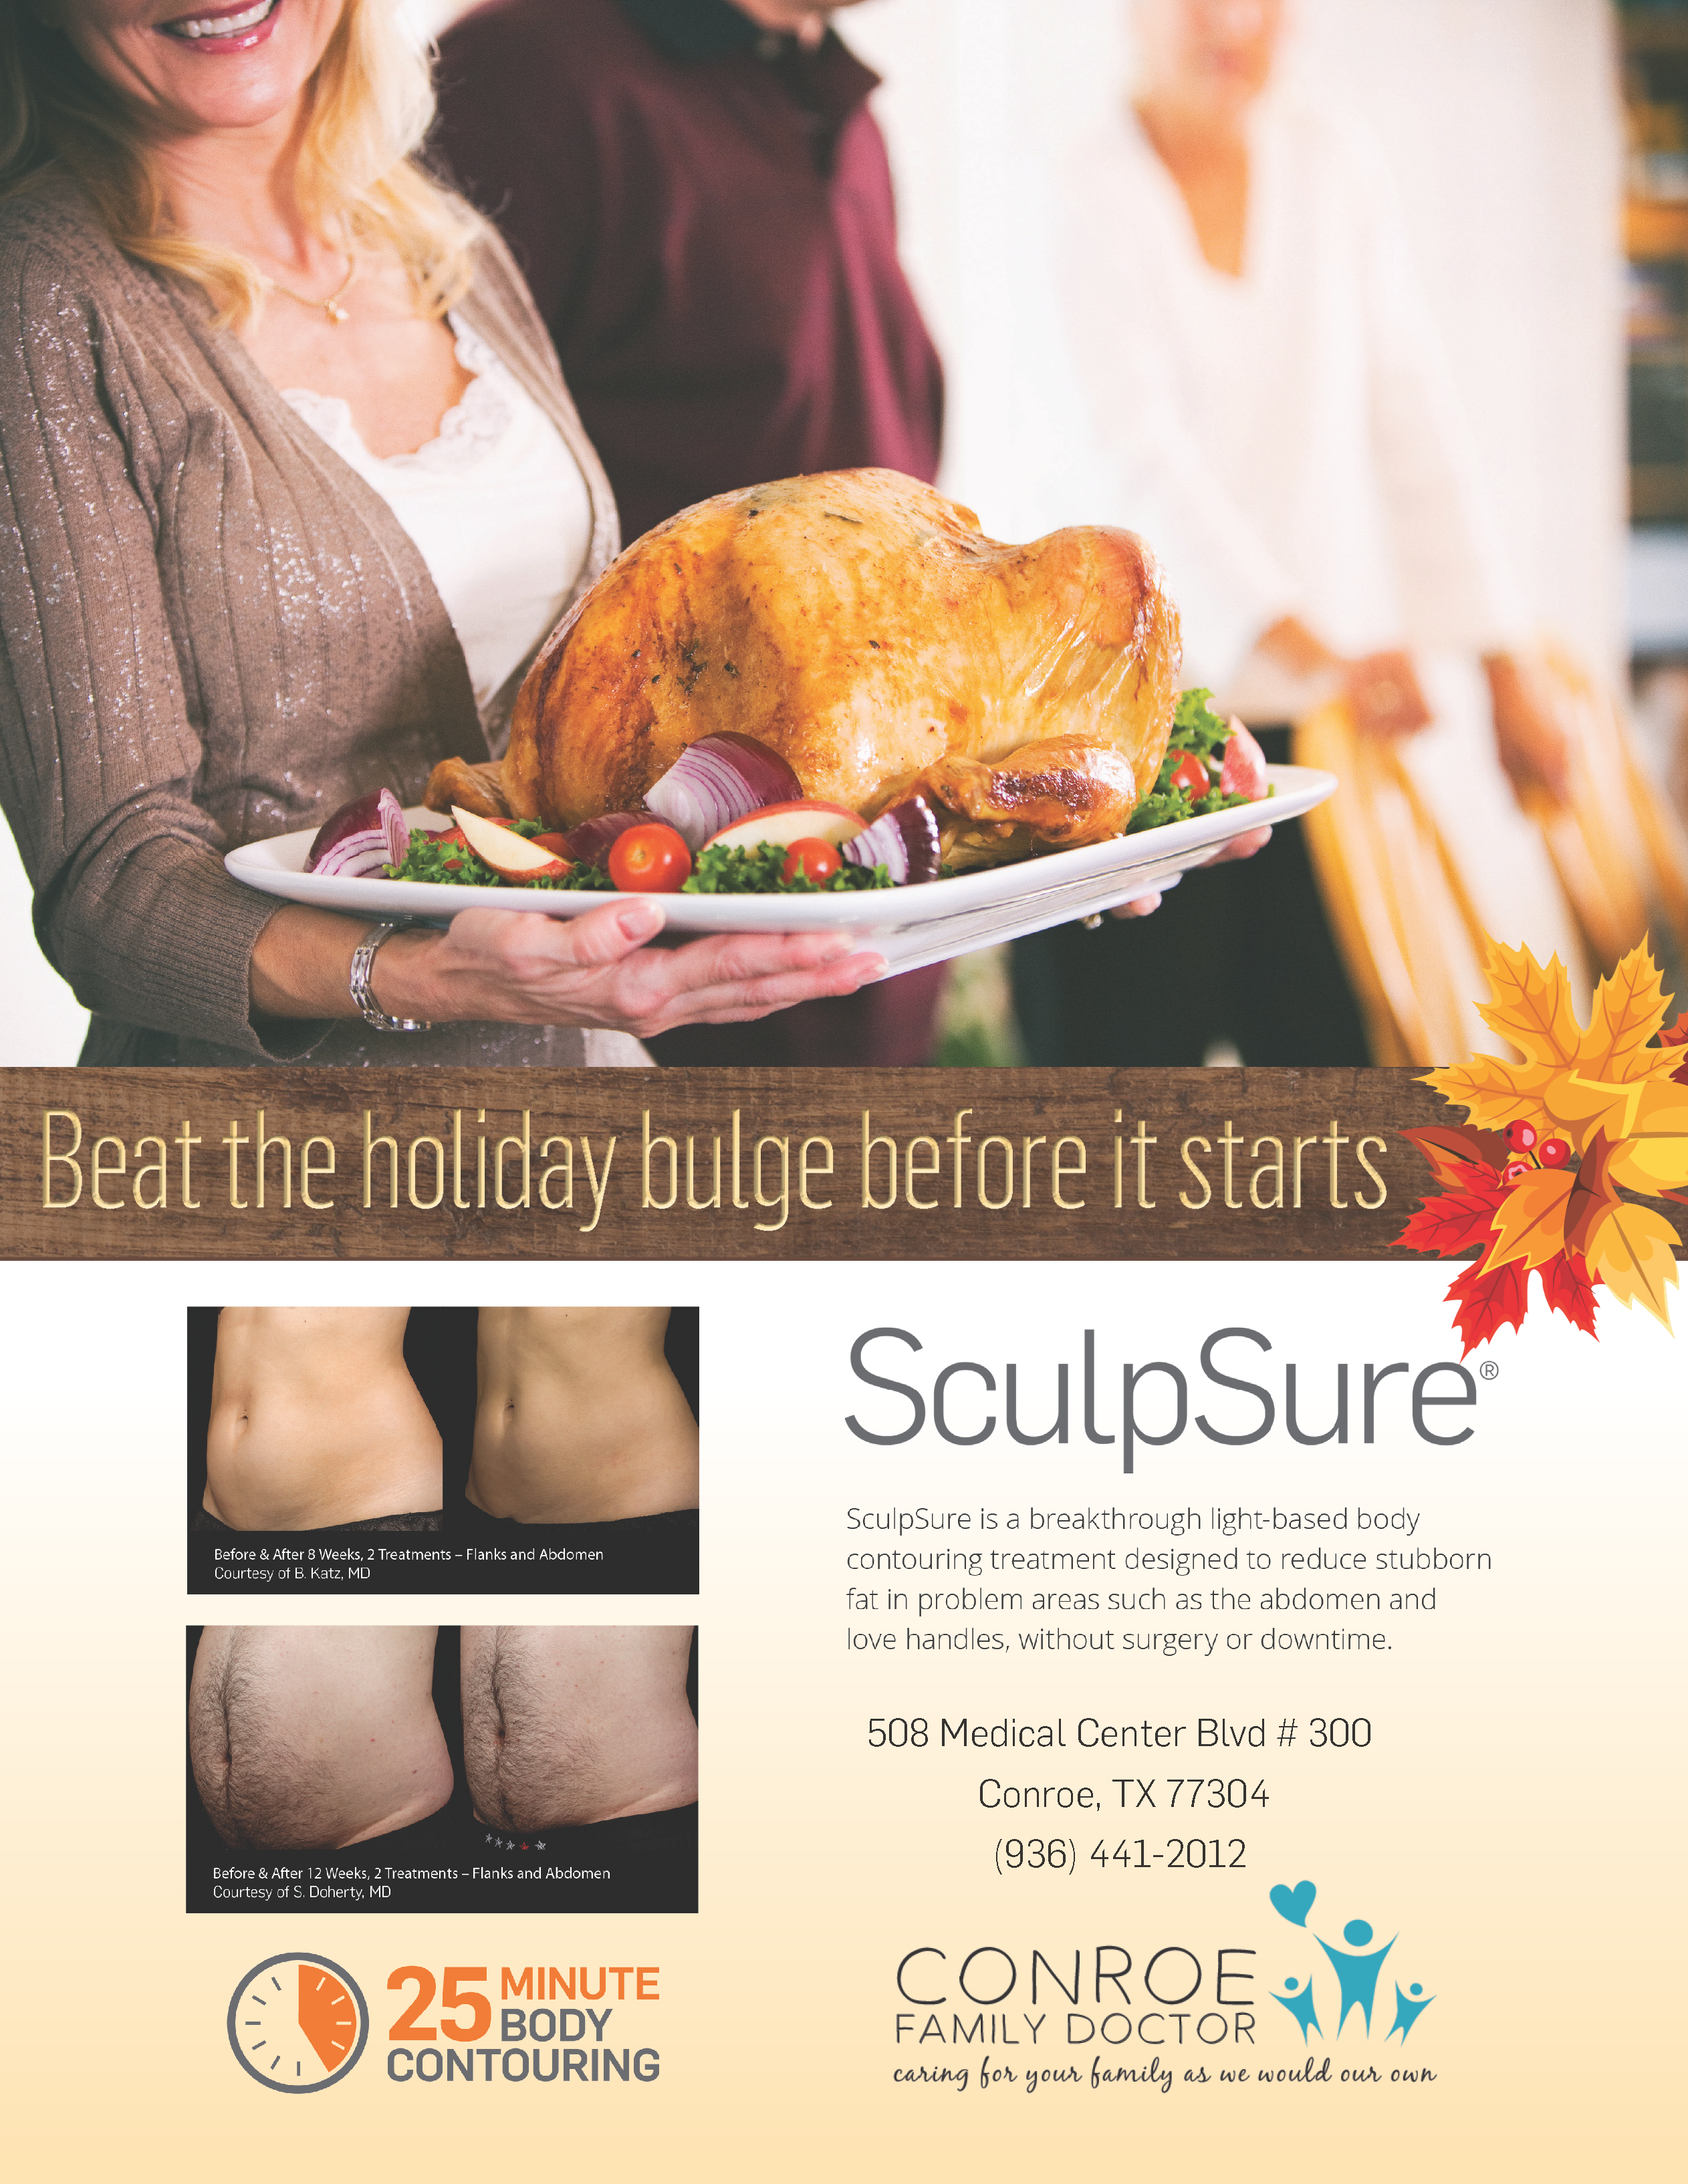 SculpSure | Conroe Family Doctor. Beat the Holiday bulge before it starts with a Holiday Specials! Call to schedule your free consultation today! (936) 657-4455 or visit us online at www.woodlandssculpsure.com